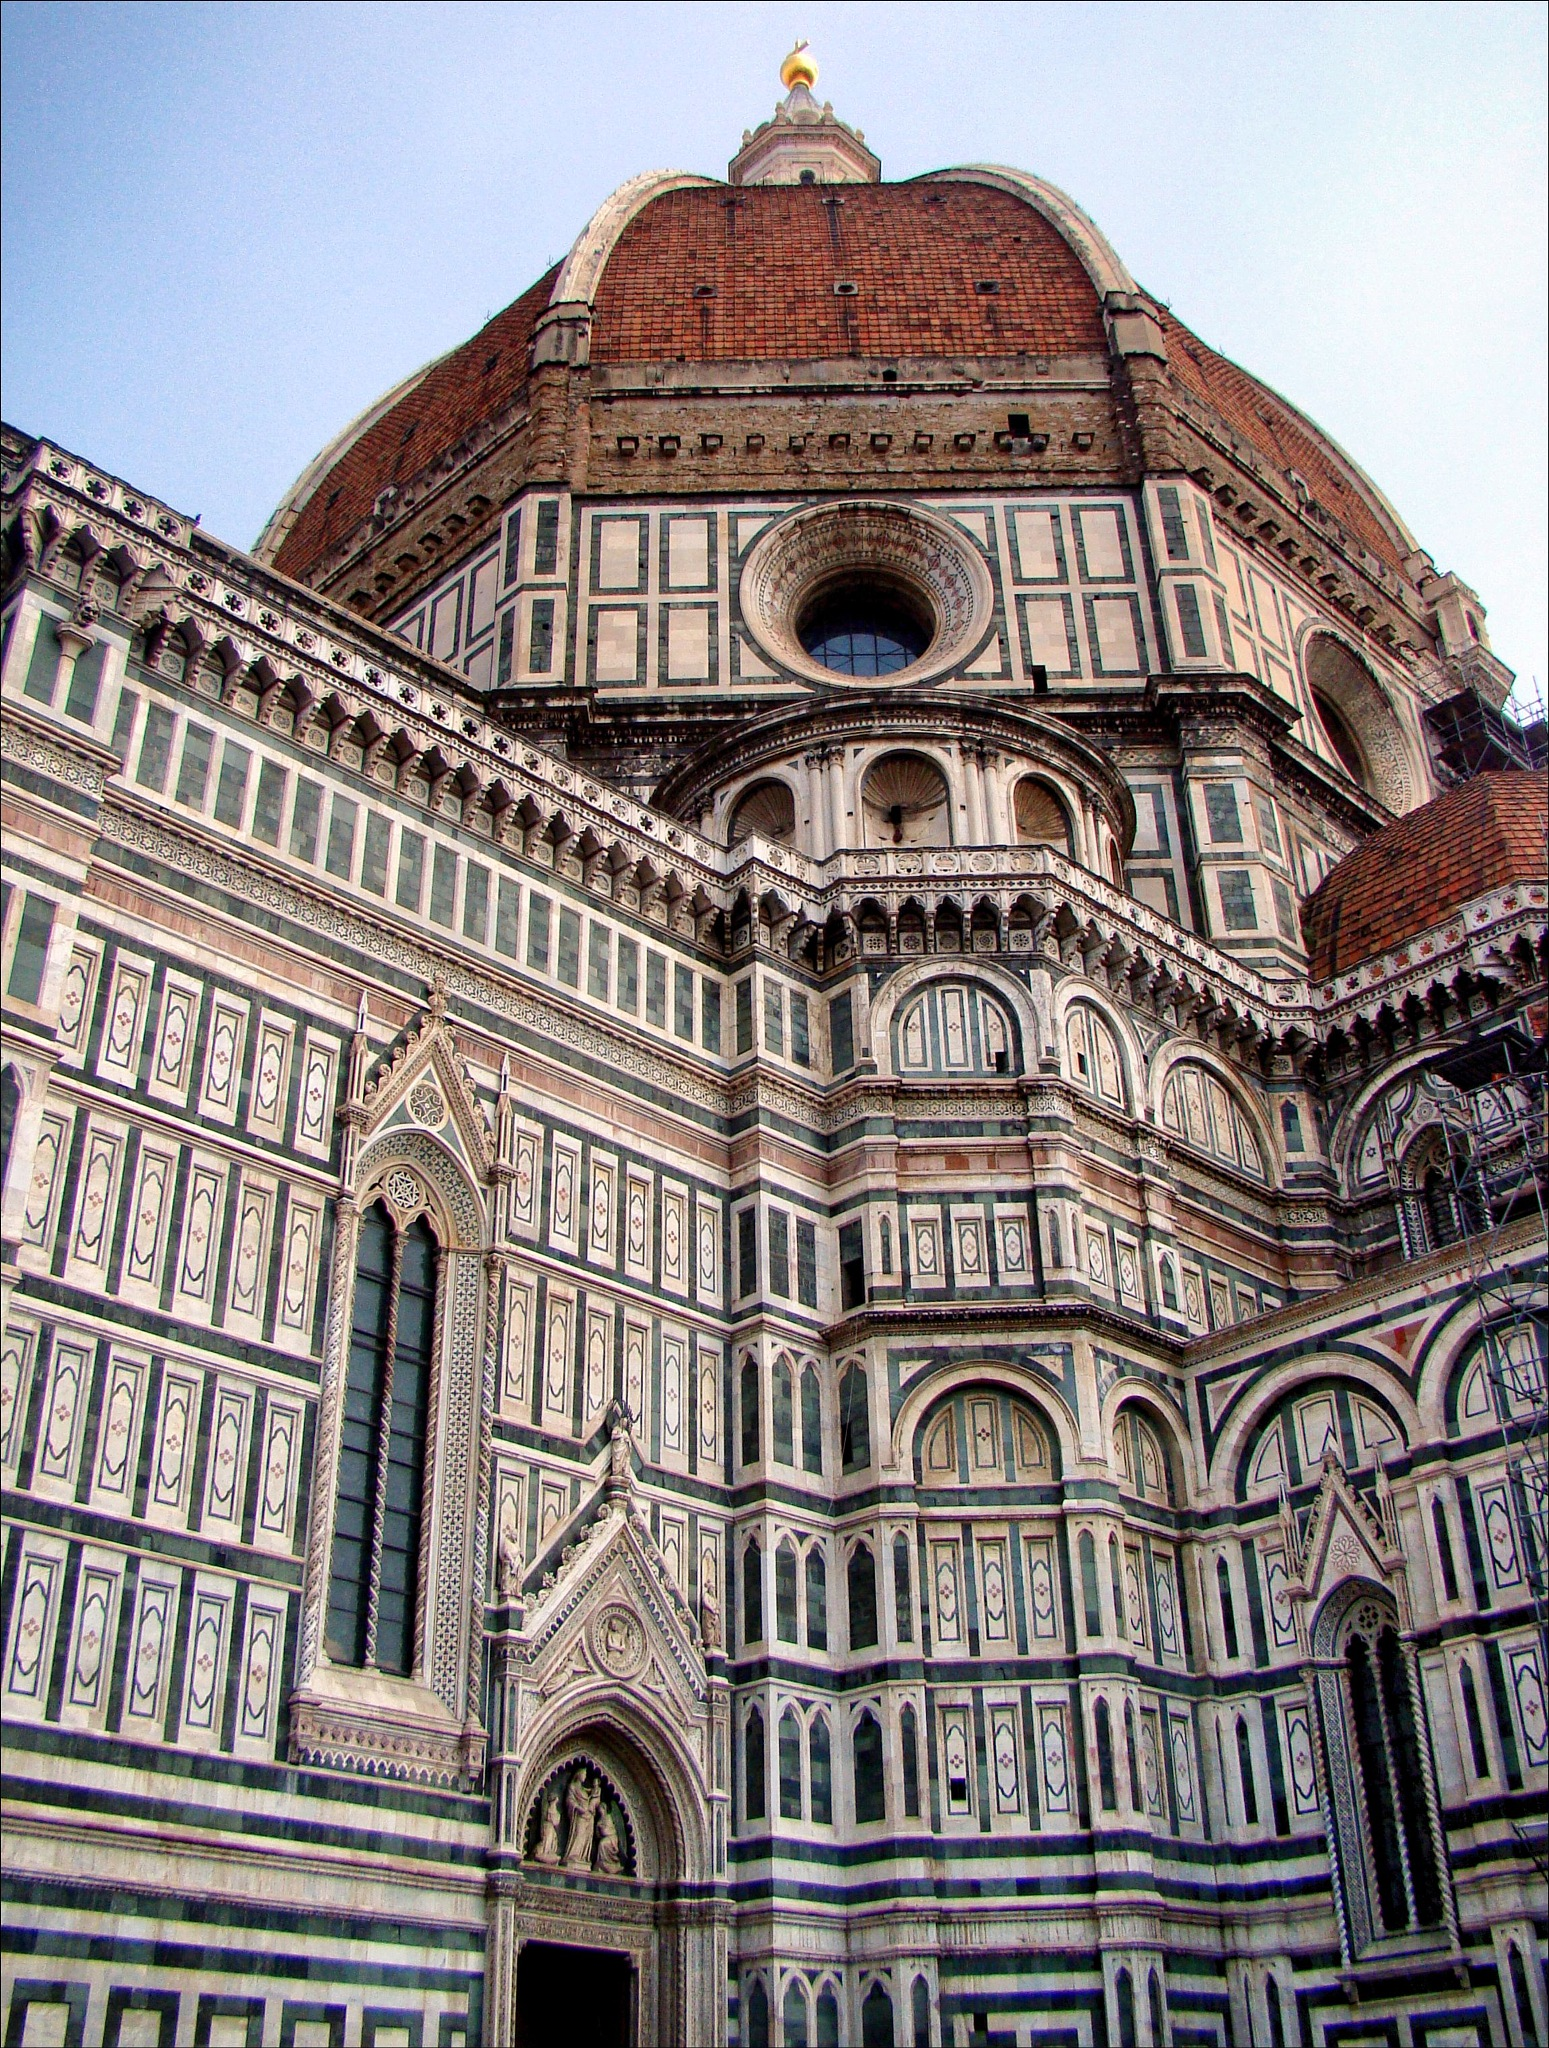 Duomo of Florence rousing Brunelleschi's dome. by Fred Matos